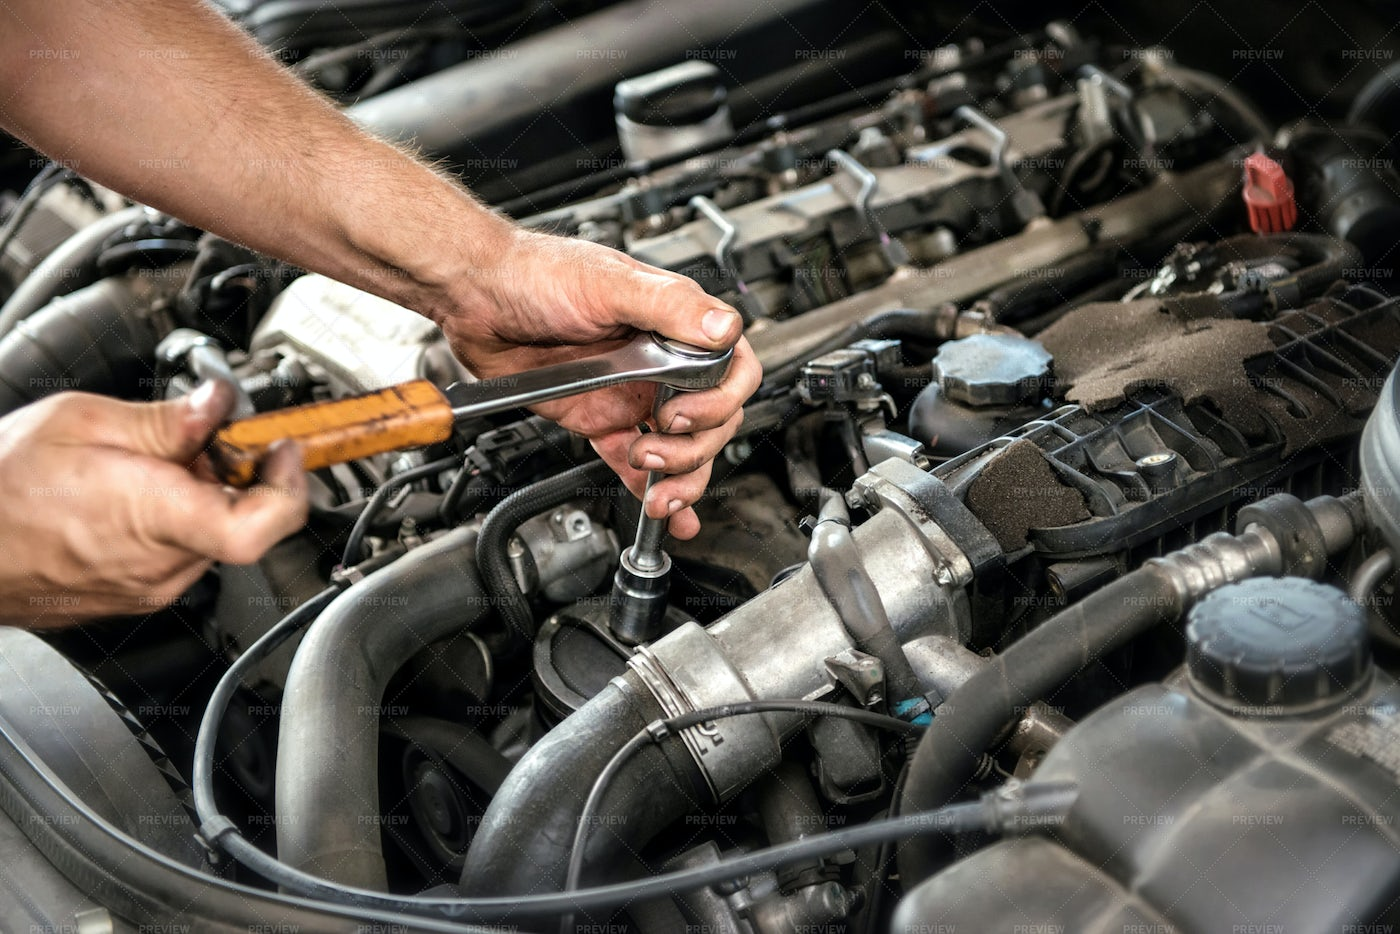 Mechanic Using A Wrench And Socket: Stock Photos